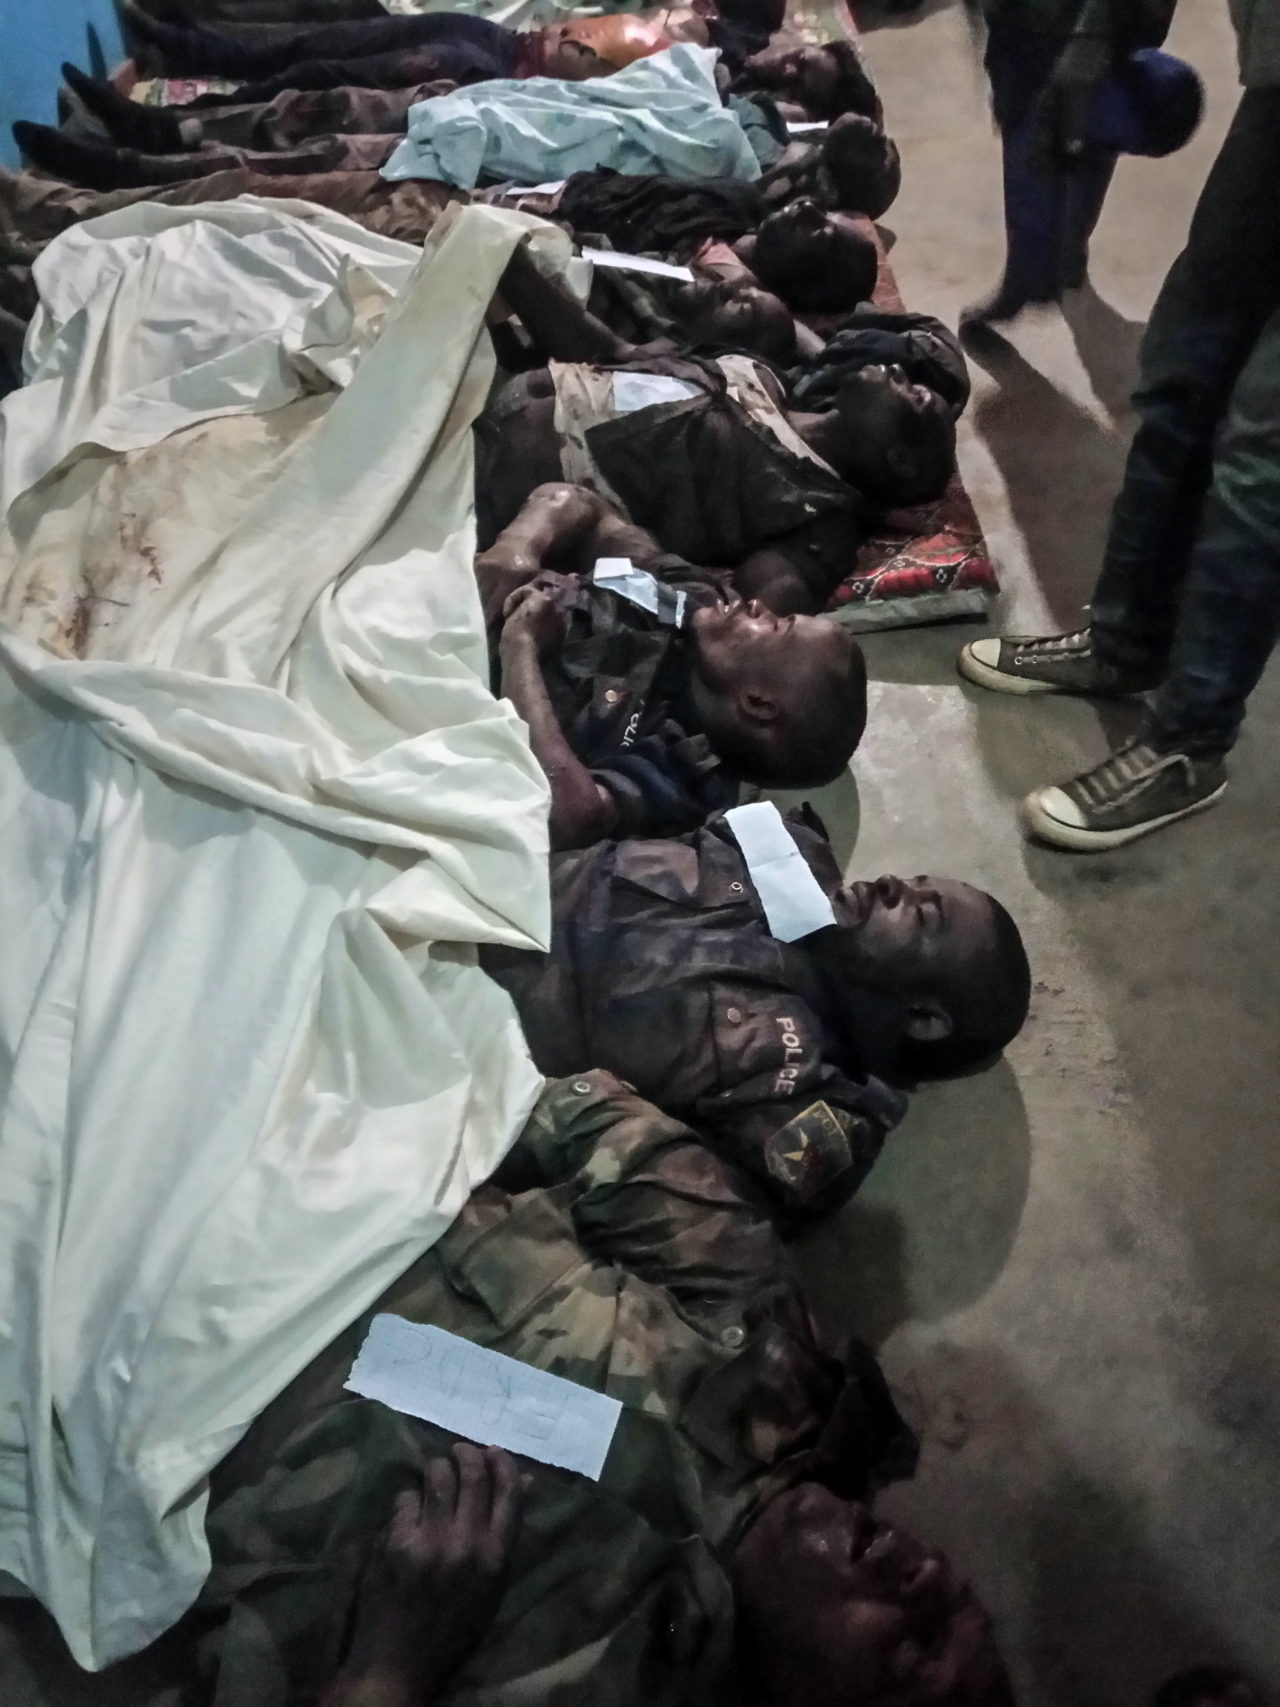 "Bunia, DRC, July 2020. The bodies of three Congolese policemen and four government soldiers lie at the morgue in the city of Bunia in Congo's northeastern Ituri Province after 11 people, including a provincial deputy and civilians, were killed by gunmen in an ambush at the village of Matete in Djugu territory on July 4. The attack was the latest blamed on assailants from the Cooperative for the Development of Congo (CODECO), an armed political-religious sect drawn from the Lendu ethnic group that has targeted rival members of the Hema community. CODECO and other Lendu fighters are accused by The Office of the UN High Commissioner for Human Rights of pursuing ""a strategy of slaughtering local residents—mainly the Hema, but also the Alur—since 2017"" to control natural resources in the region. Militia attacks have killed at least 444 civilians in Ituri since March and displaced more than 200,000 people since the beginning of the year, according Human Rights Watch, which cited United Nations sources. © Dieudonne Dirole for Fondation Carmignac"